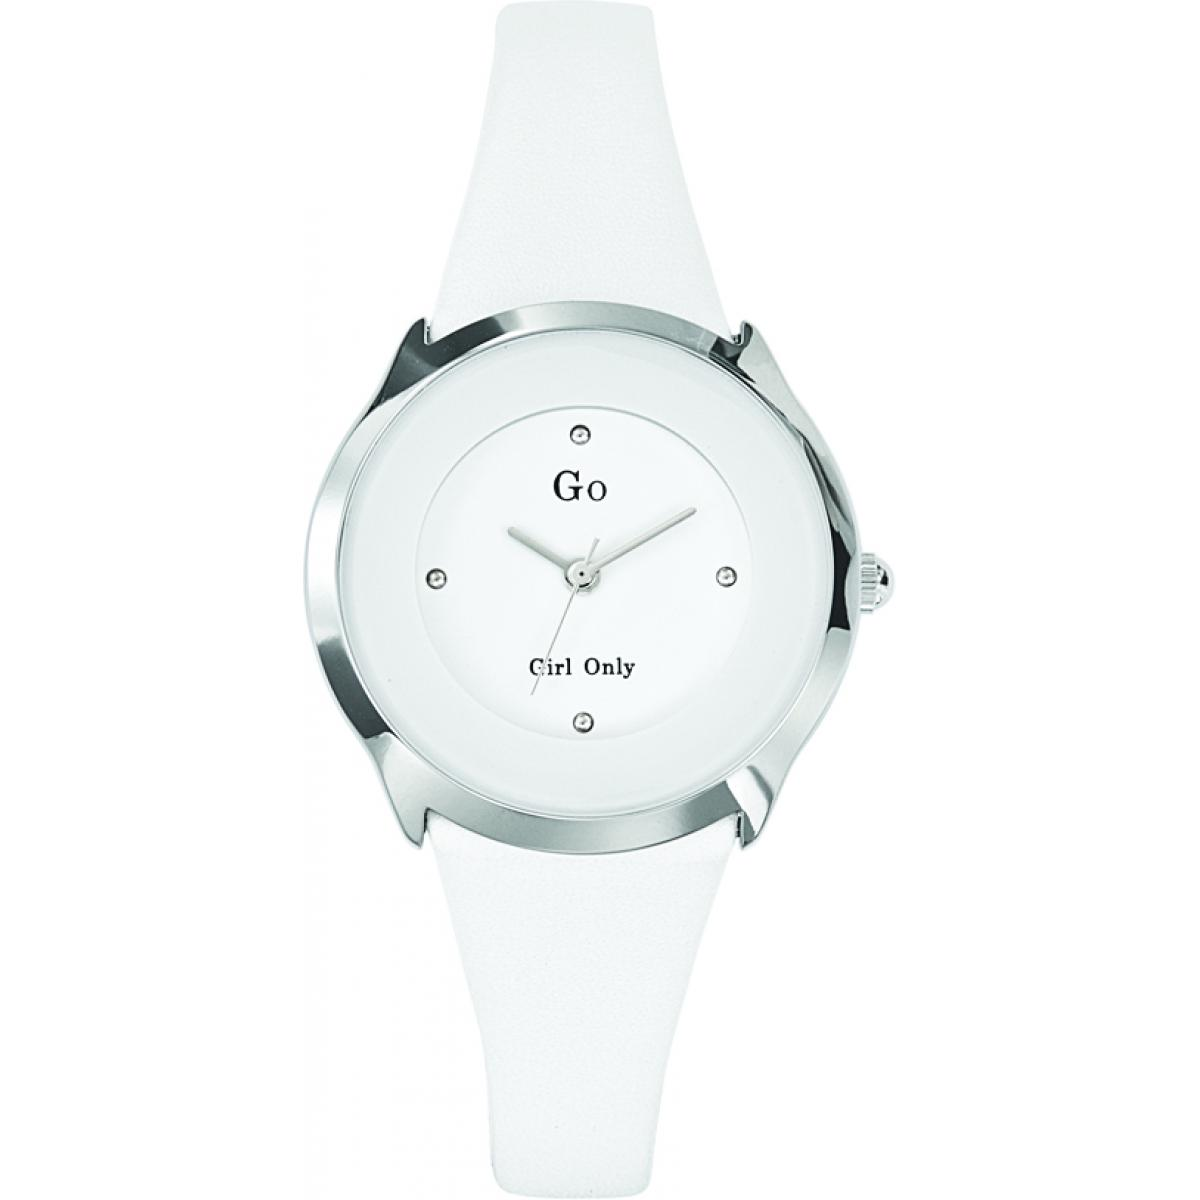 Montre Go Girl Only 697964 - Montre Ronde Blanche Femme